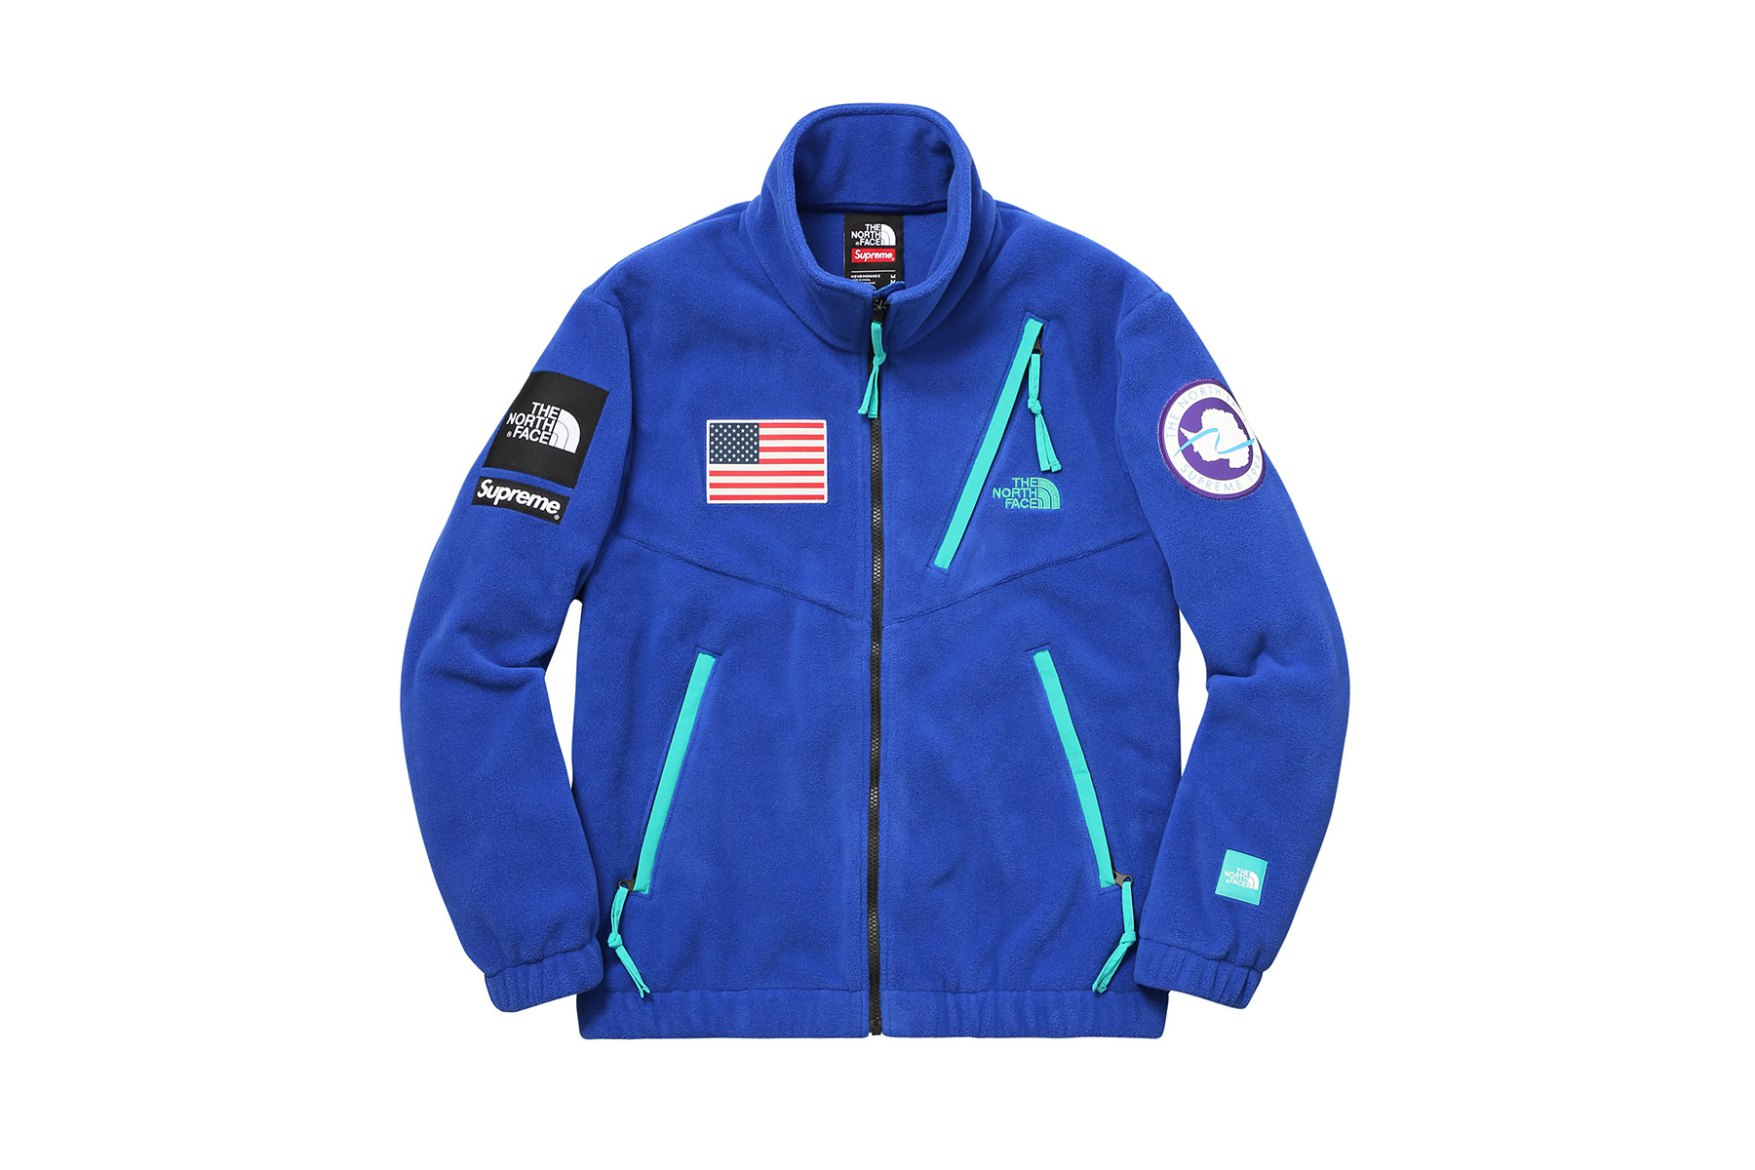 supreme-the-north-face-2017-spring-summer-blue-royal-polartec-fleece-jacket-22